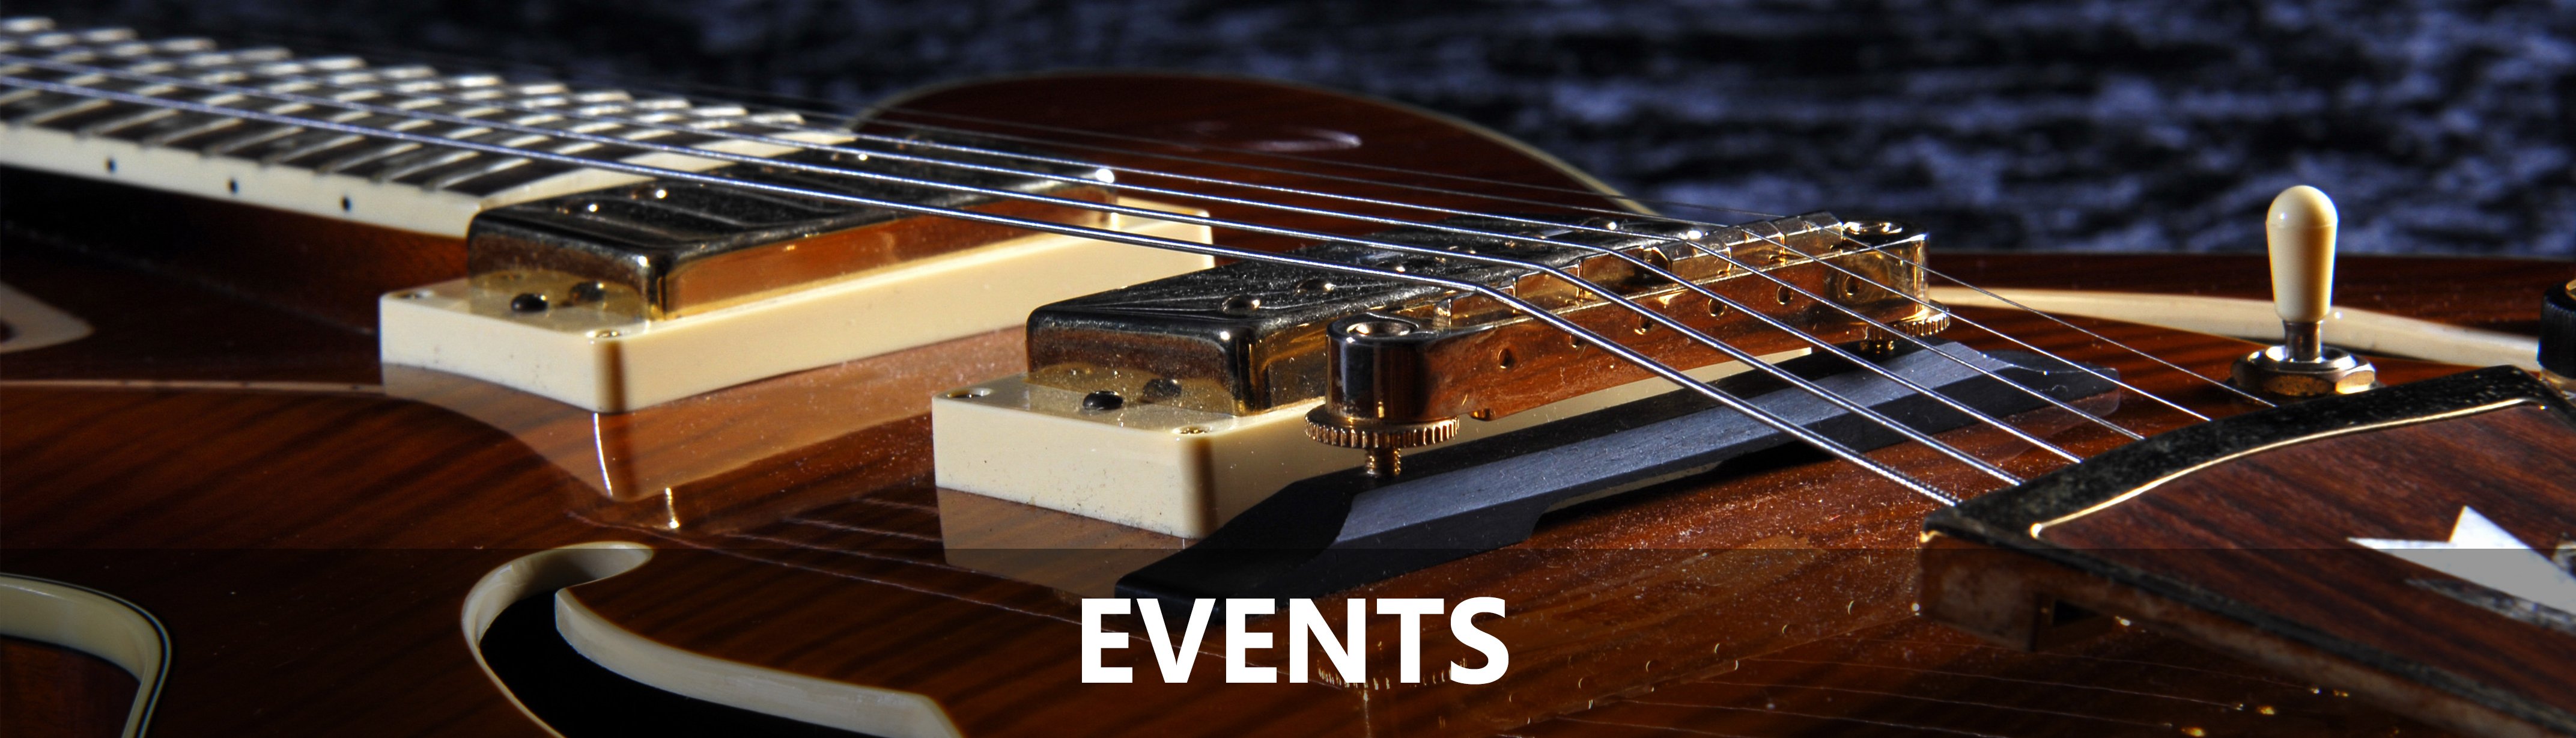 Events at Mitchell Conservatorium